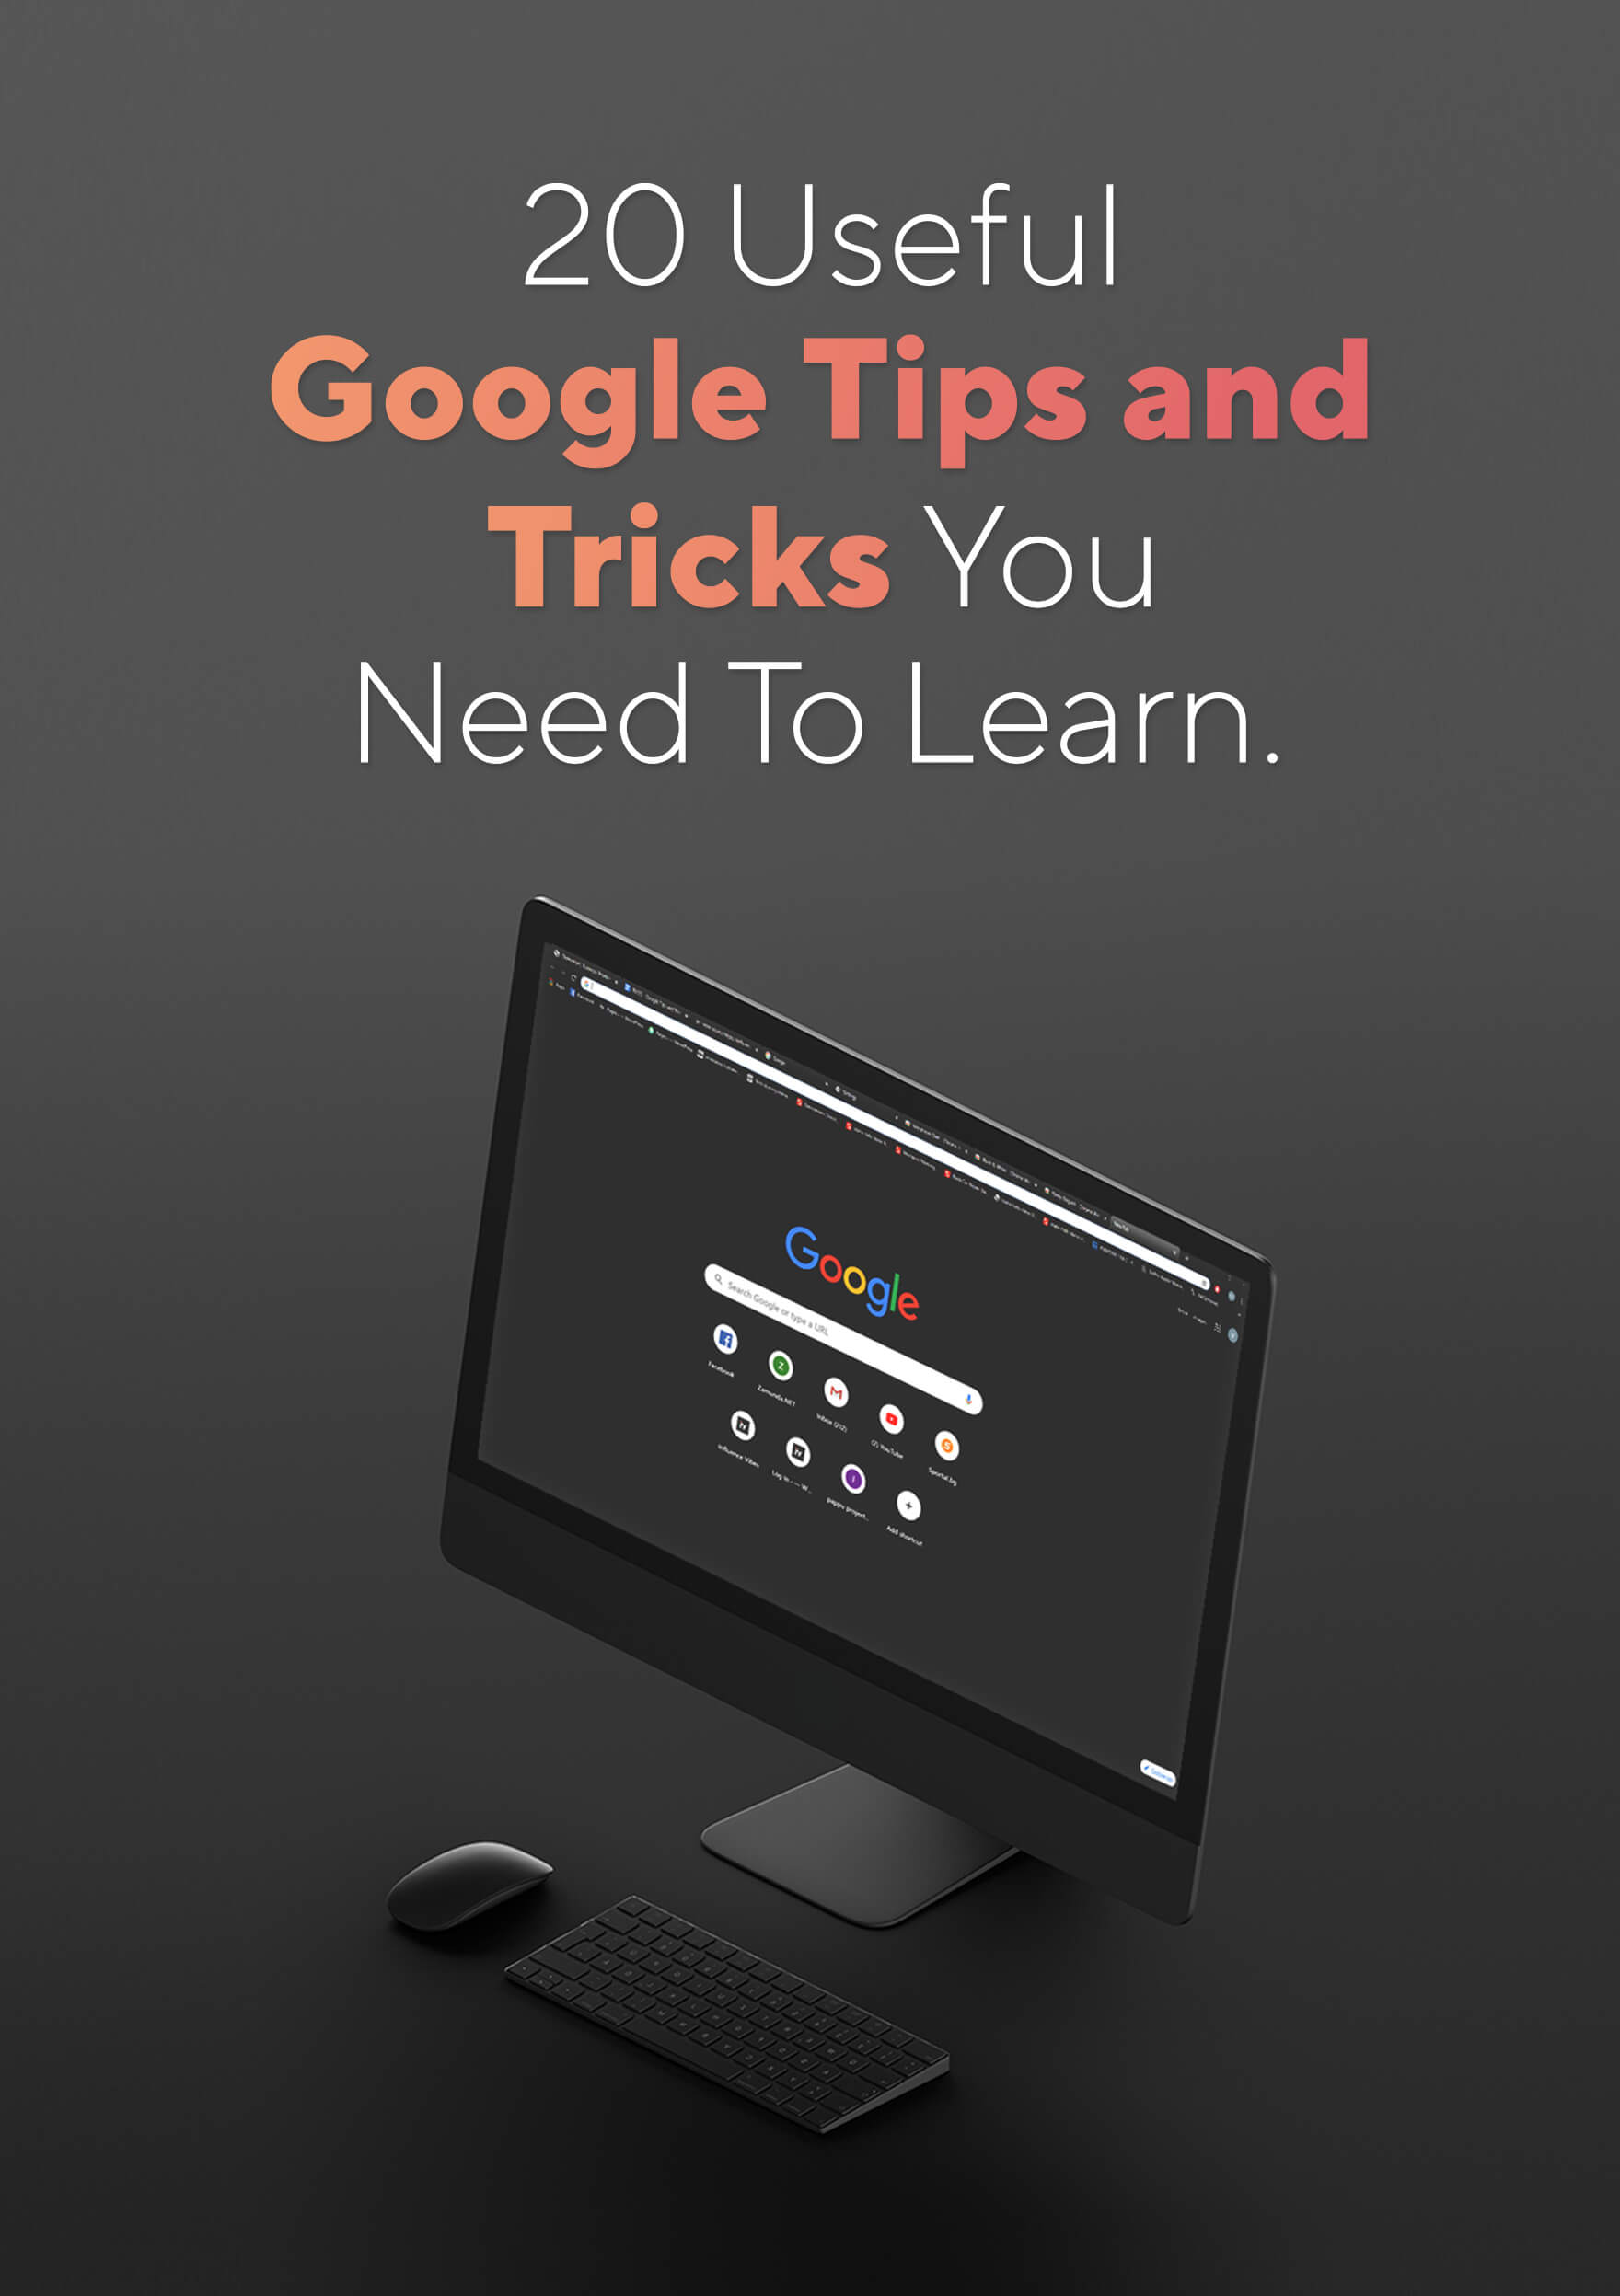 20 Useful Google Tips and Tricks You Need To Learn